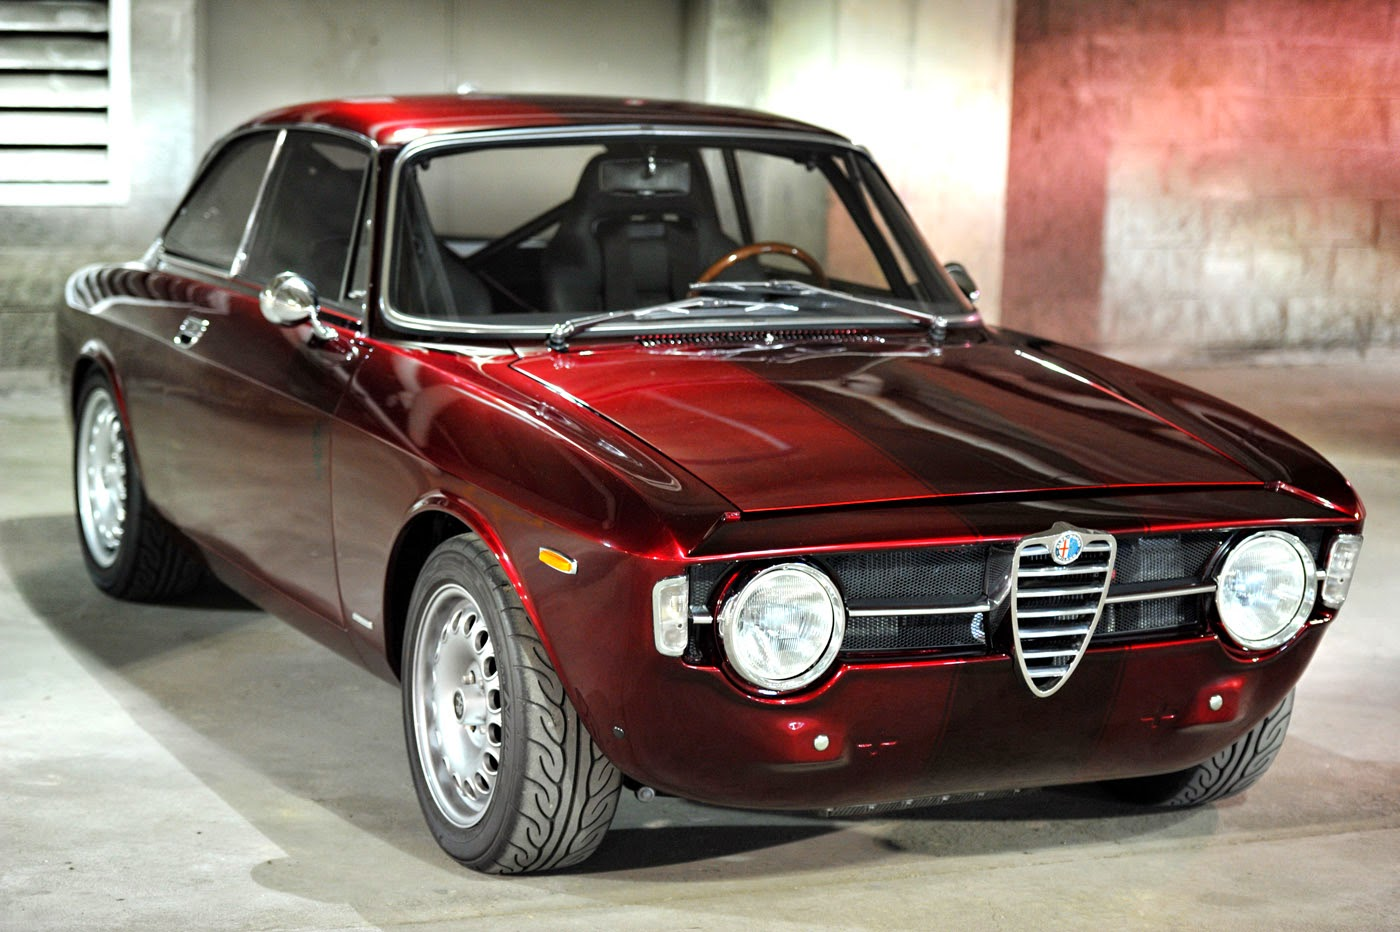 69 Alfa Romeo Gt 1300 Junior on wiring diagram alfa romeo gta